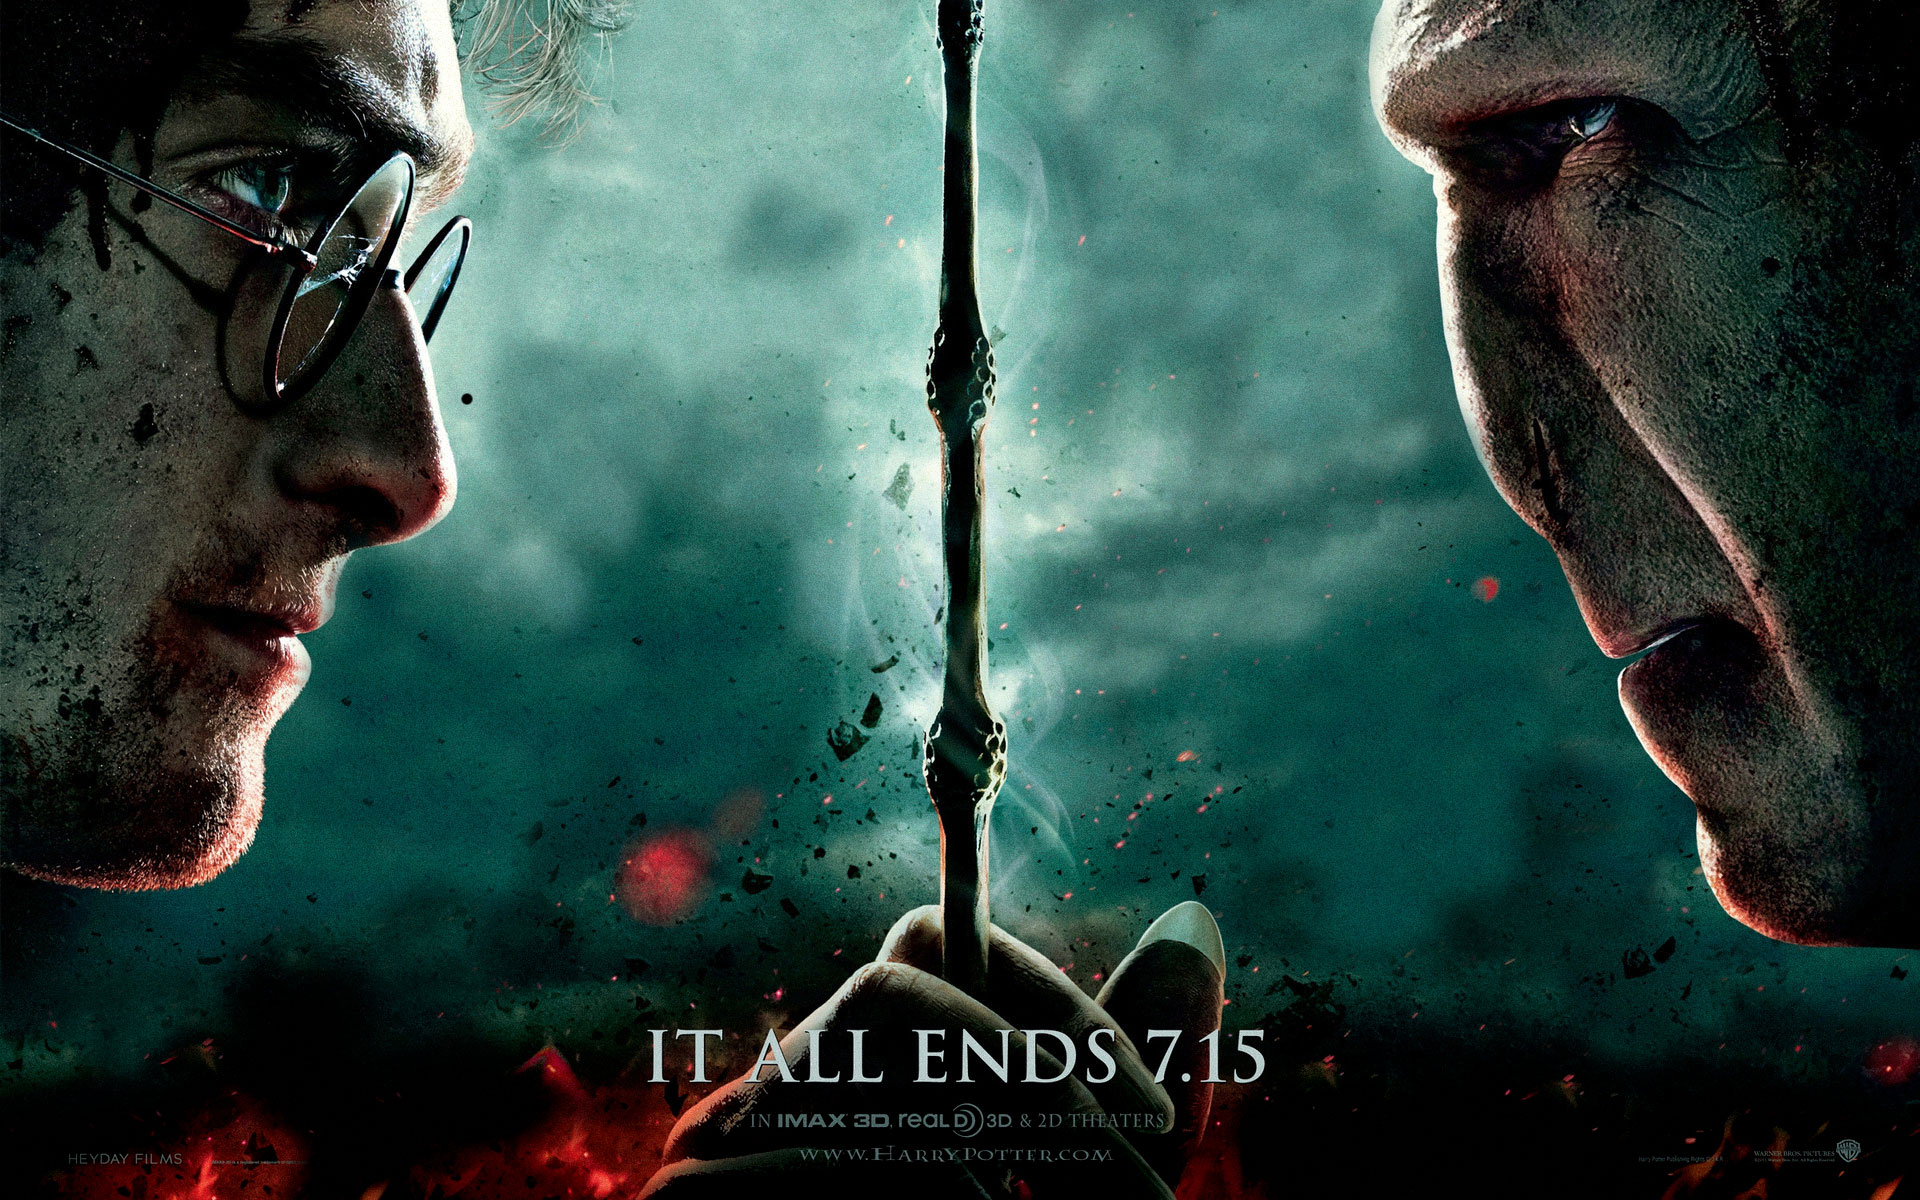 Harry Potter and the Deathly Hallows Part 2 Wallpaper Mac 1920x1200